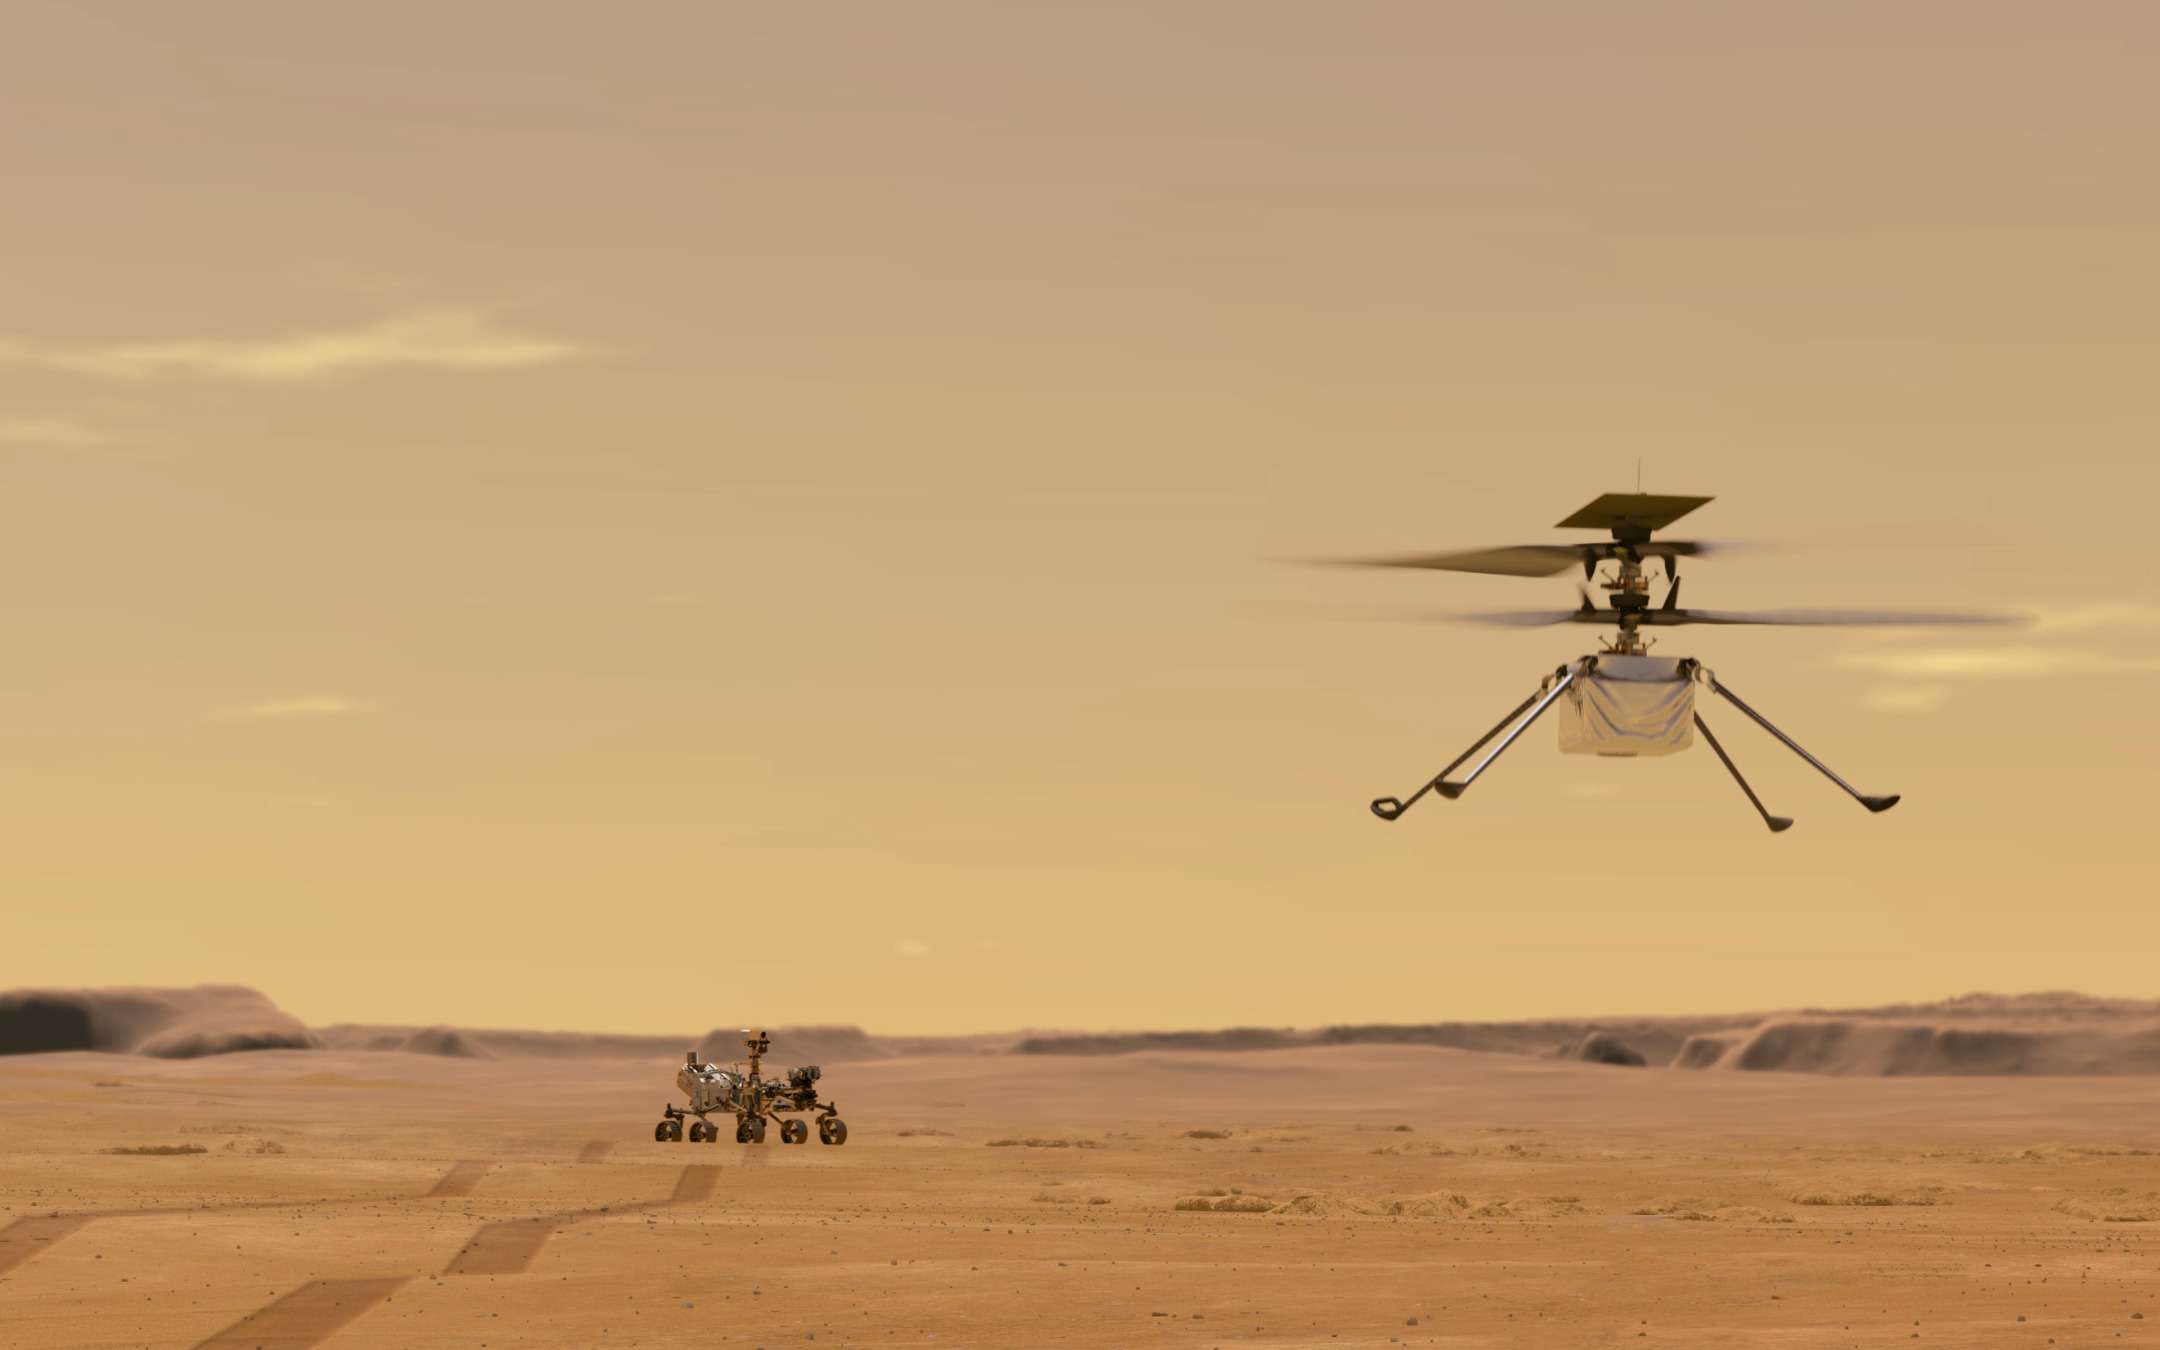 Ingenuity, the helicopter that will fly to Mars